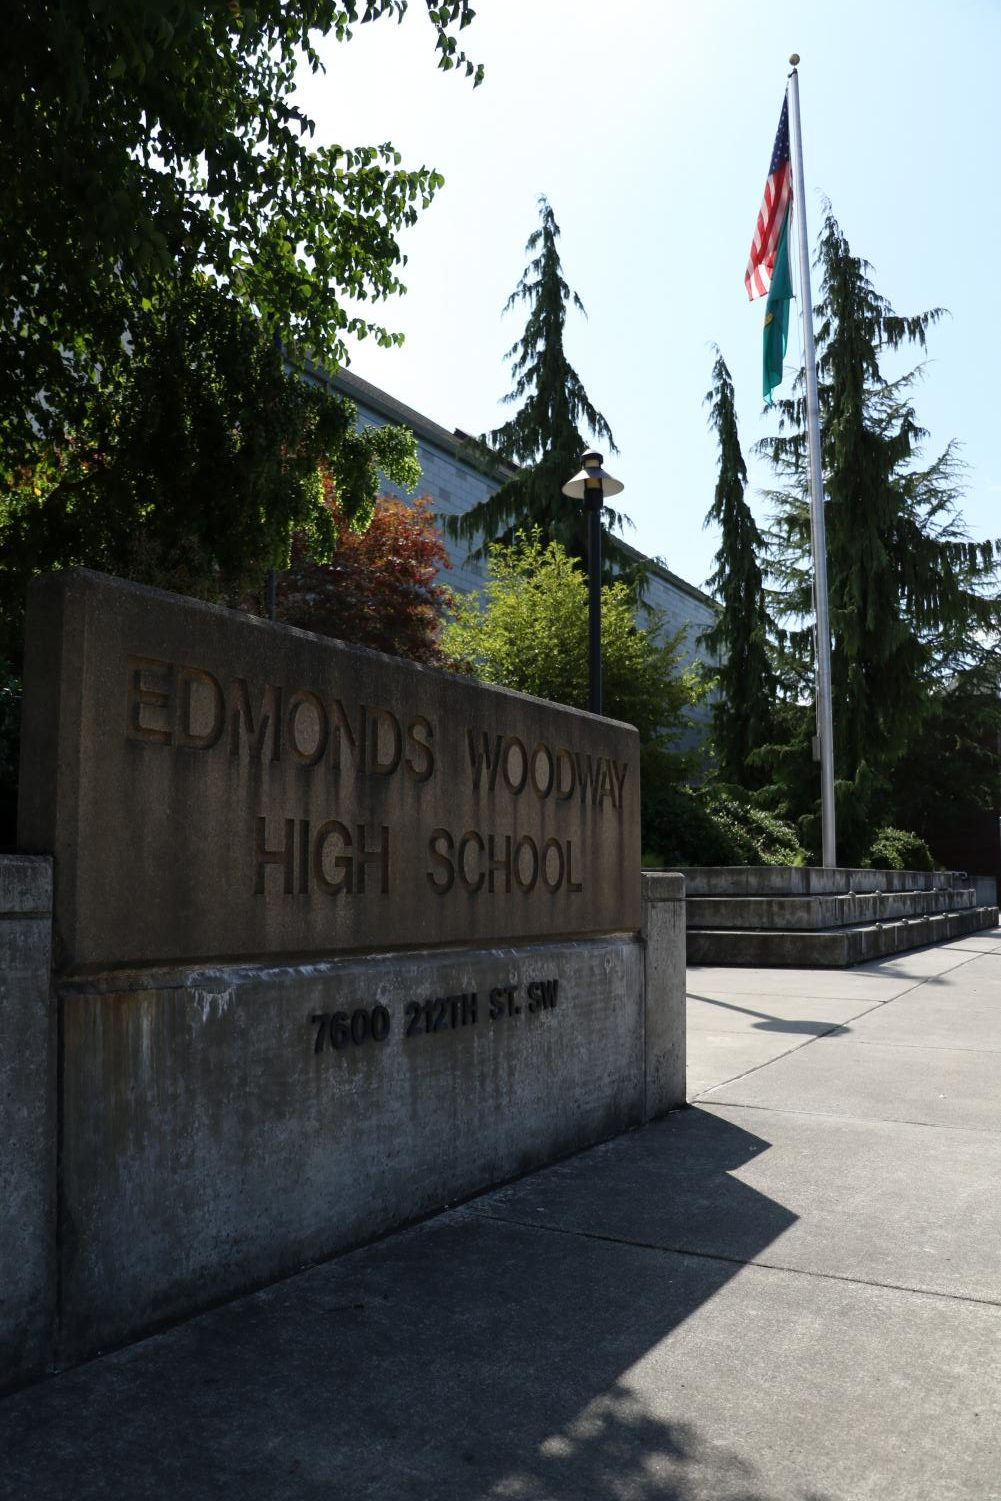 The Edmonds Education Association held its general meeting at Edmonds-Woodway High School to ratify the contract that would approve the salary increases for teaching staff in the Edmonds School District.